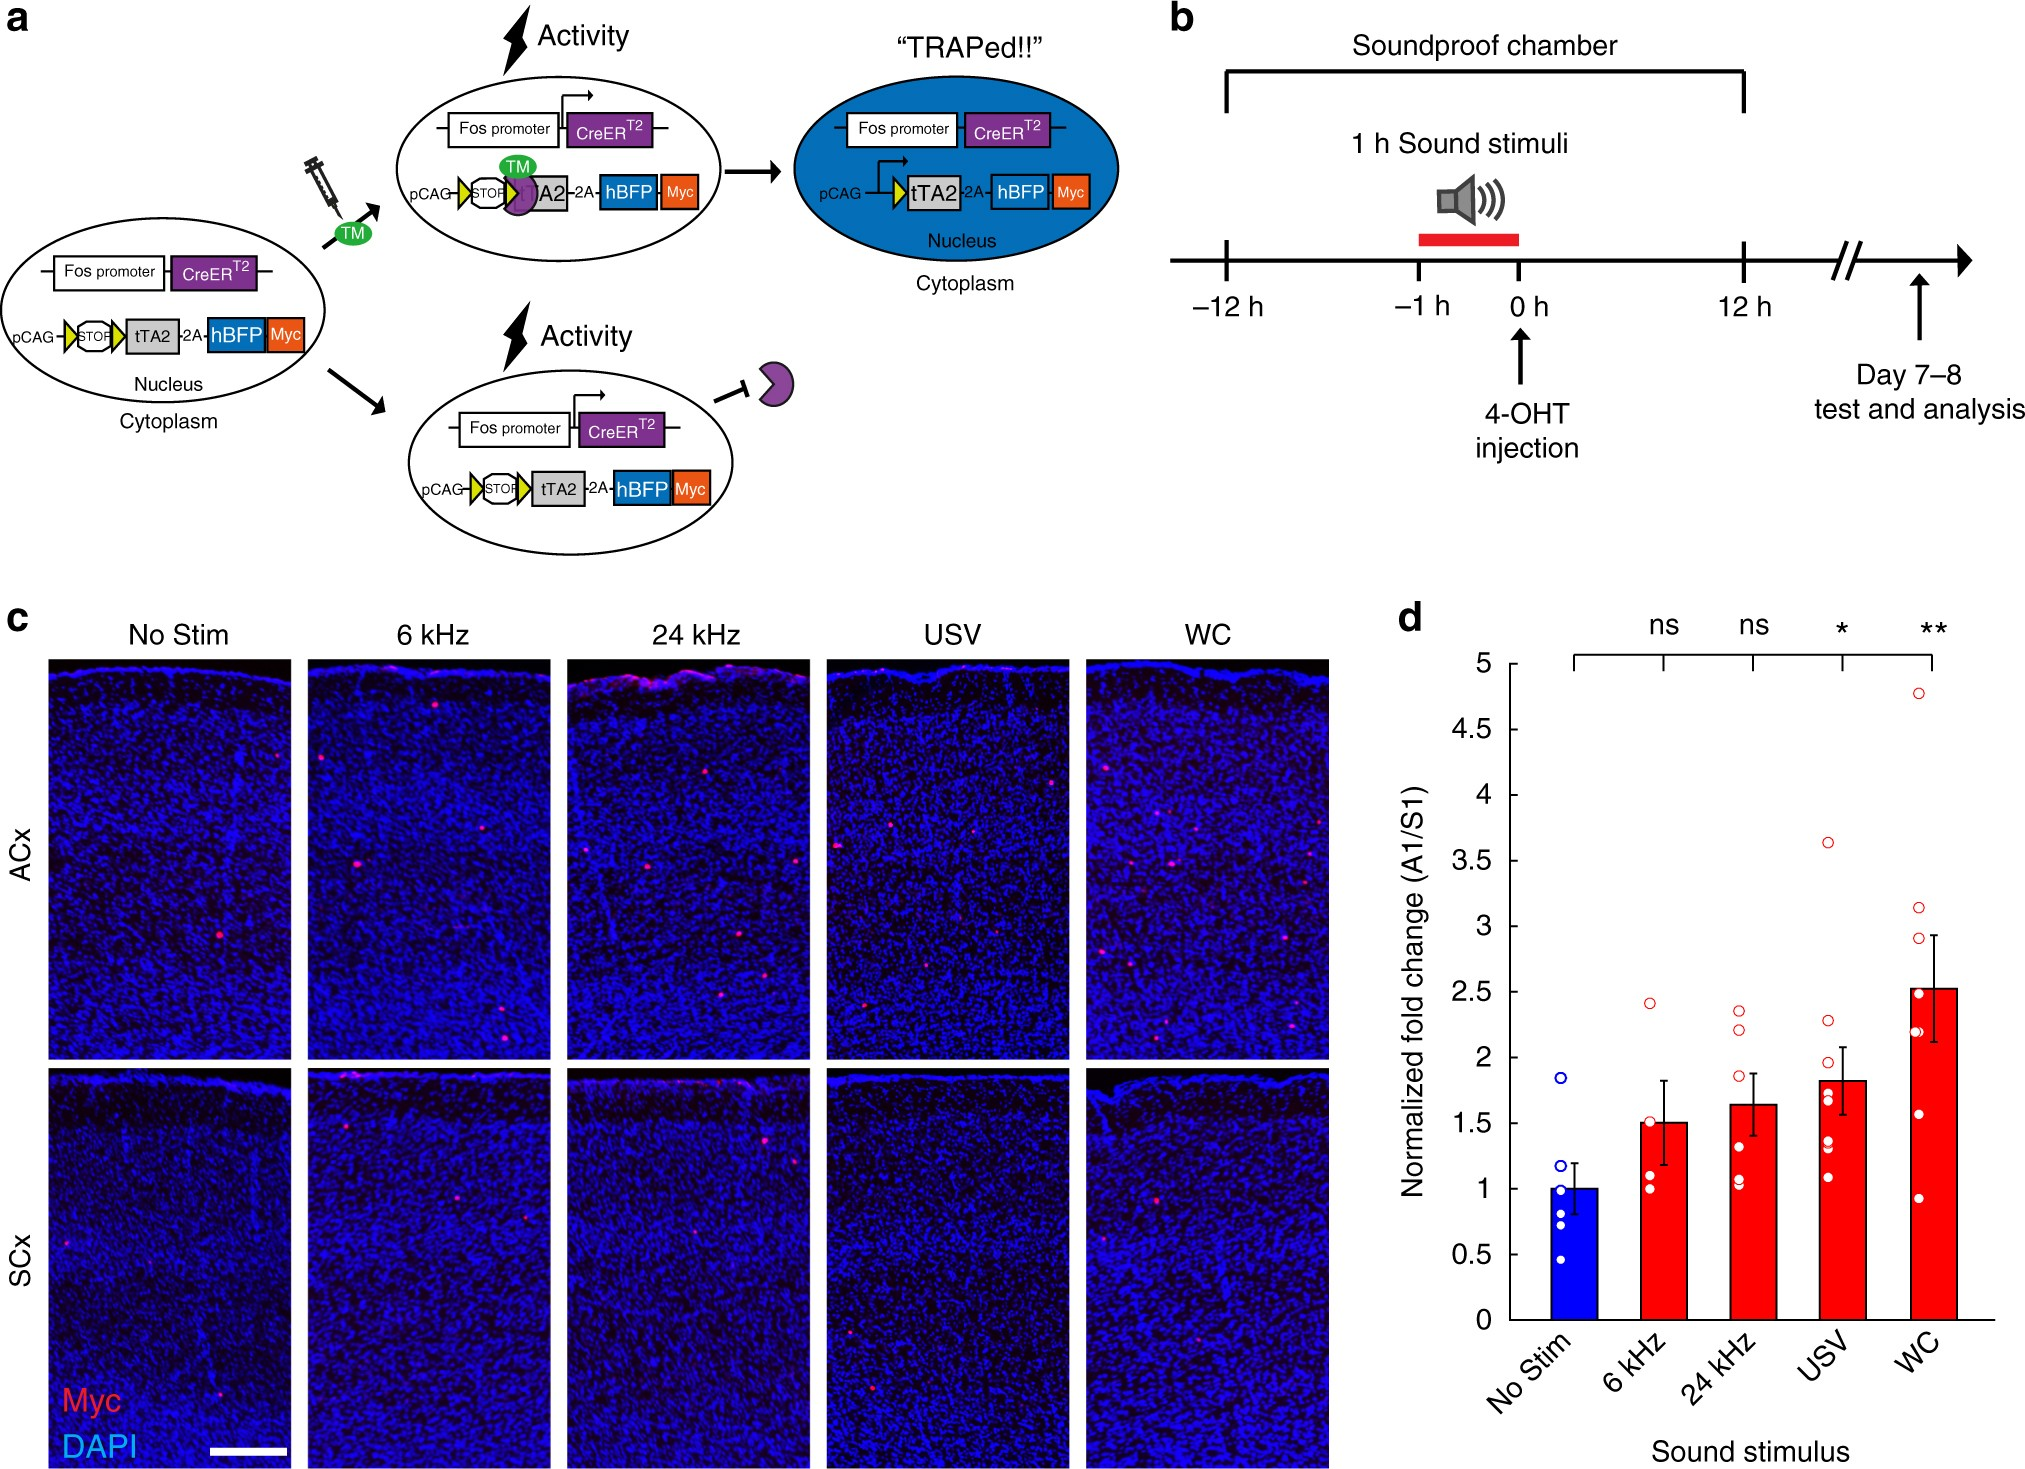 Genetic Tagging Of Active Neurons In Auditory Cortex Reveals Design A Laserdiode Driver For Range Finder Applications Ee Times Maternal Plasticity Coding Ultrasonic Vocalizations Nature Communications